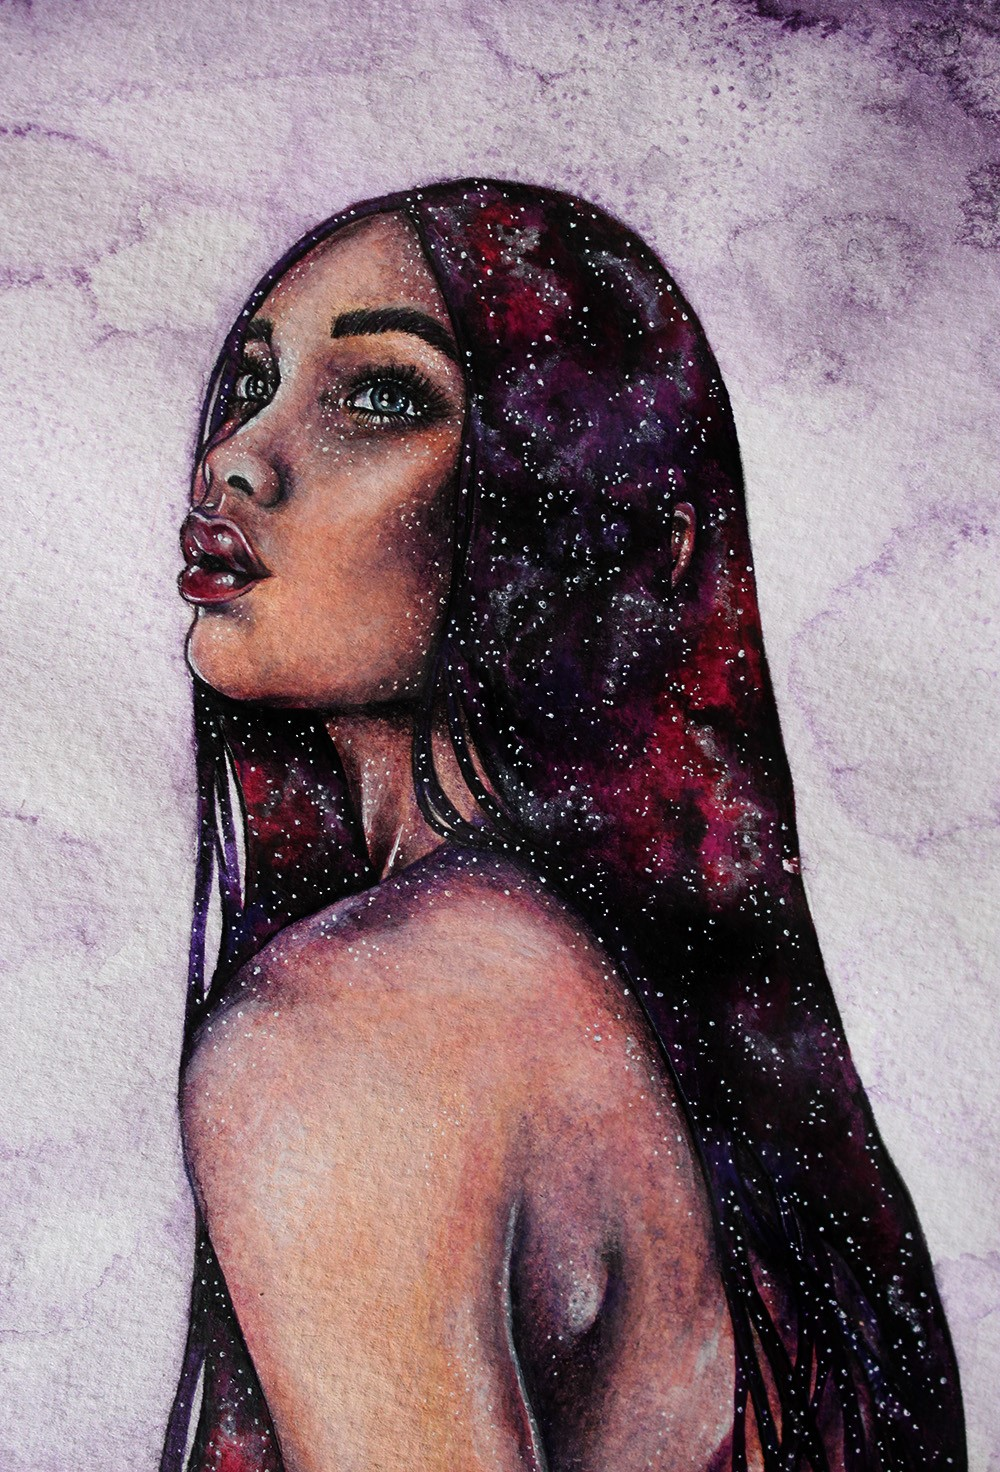 A Galaxy Effect Fantasy Female Portrait By Illustrator Holly Khraibani